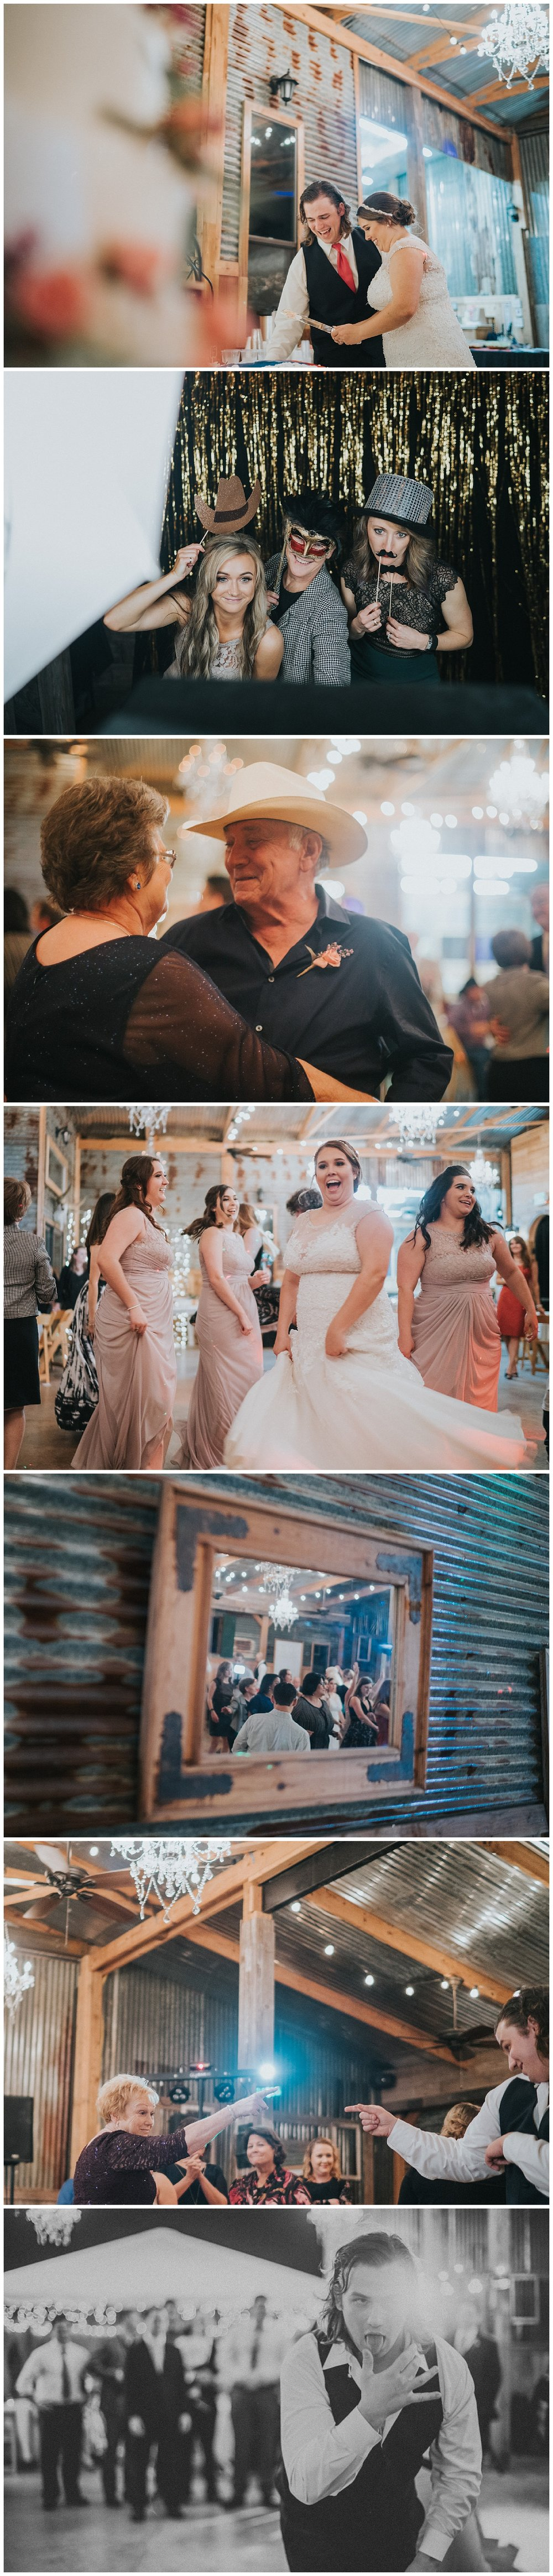 Barn and four pines - houston wedding photographer